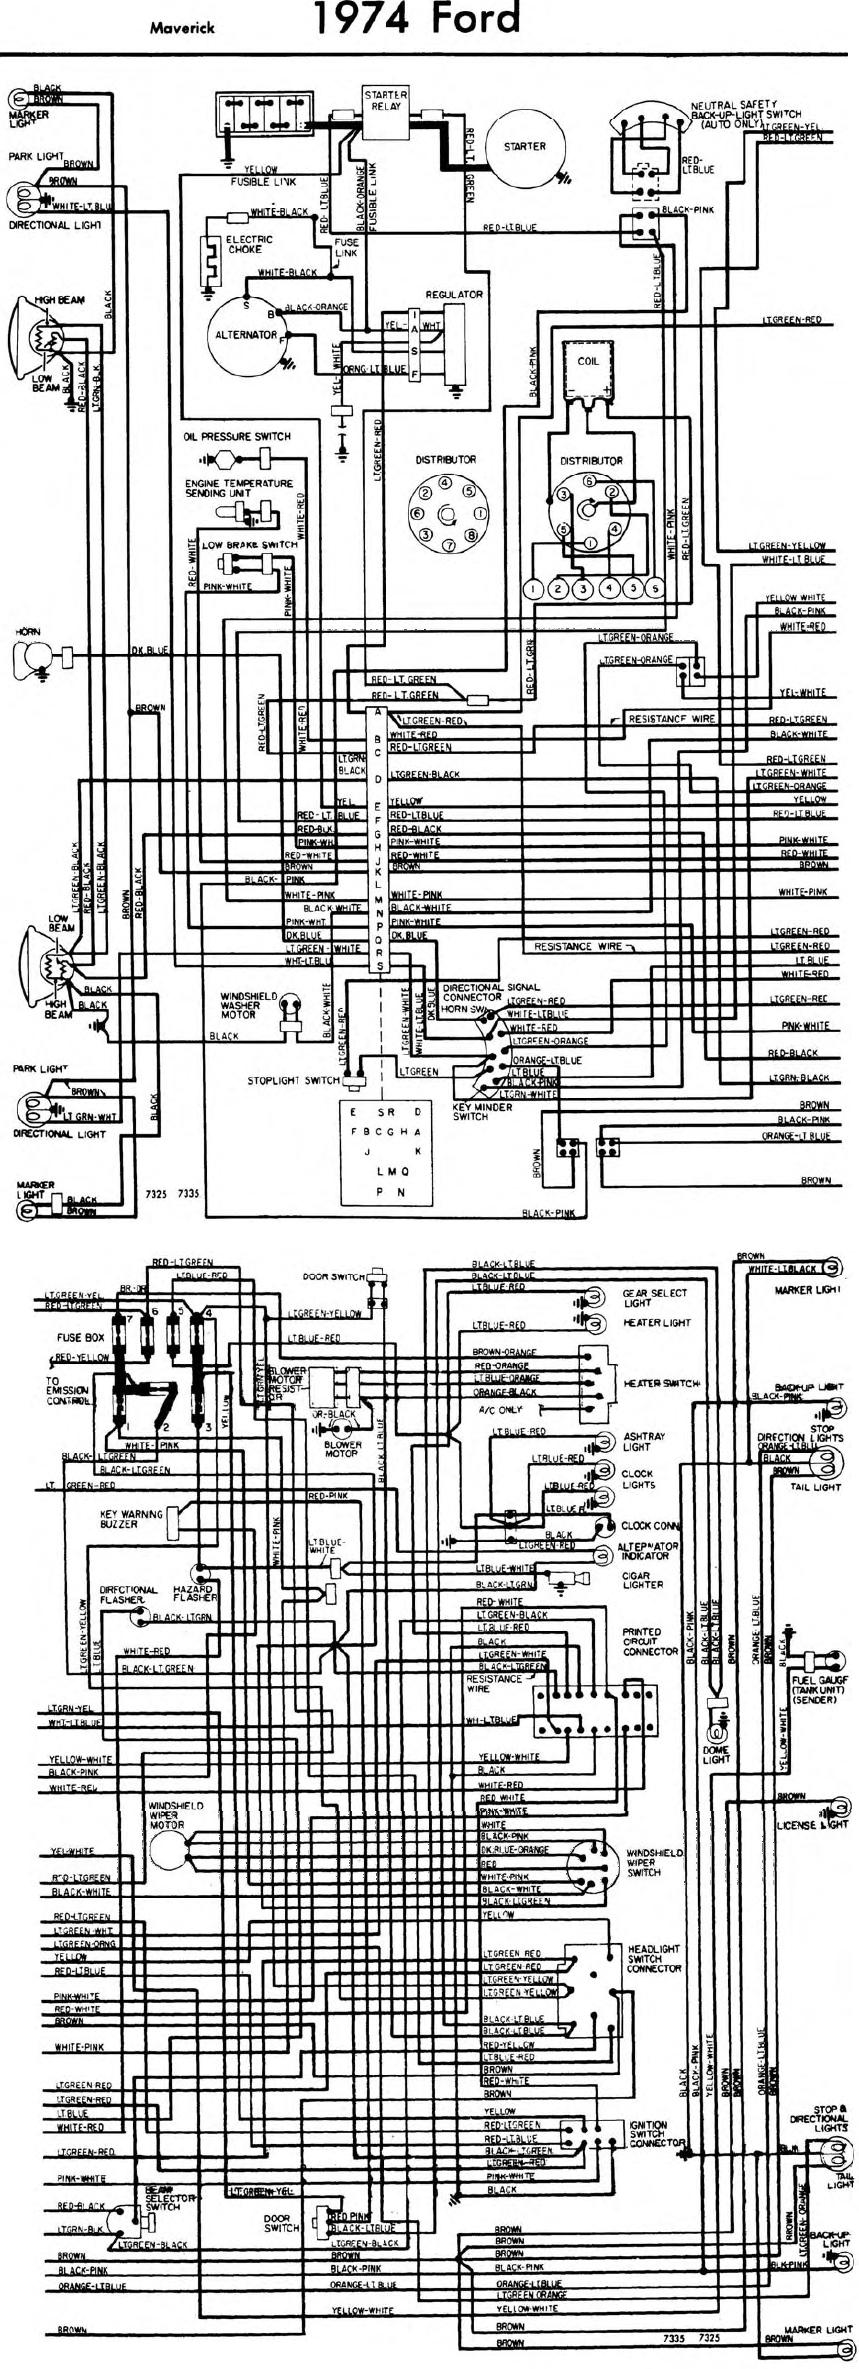 small resolution of 1970 ford maverick wiring diagram wiring schematic data 95 ford starter solenoid wiring diagram 1970 ford